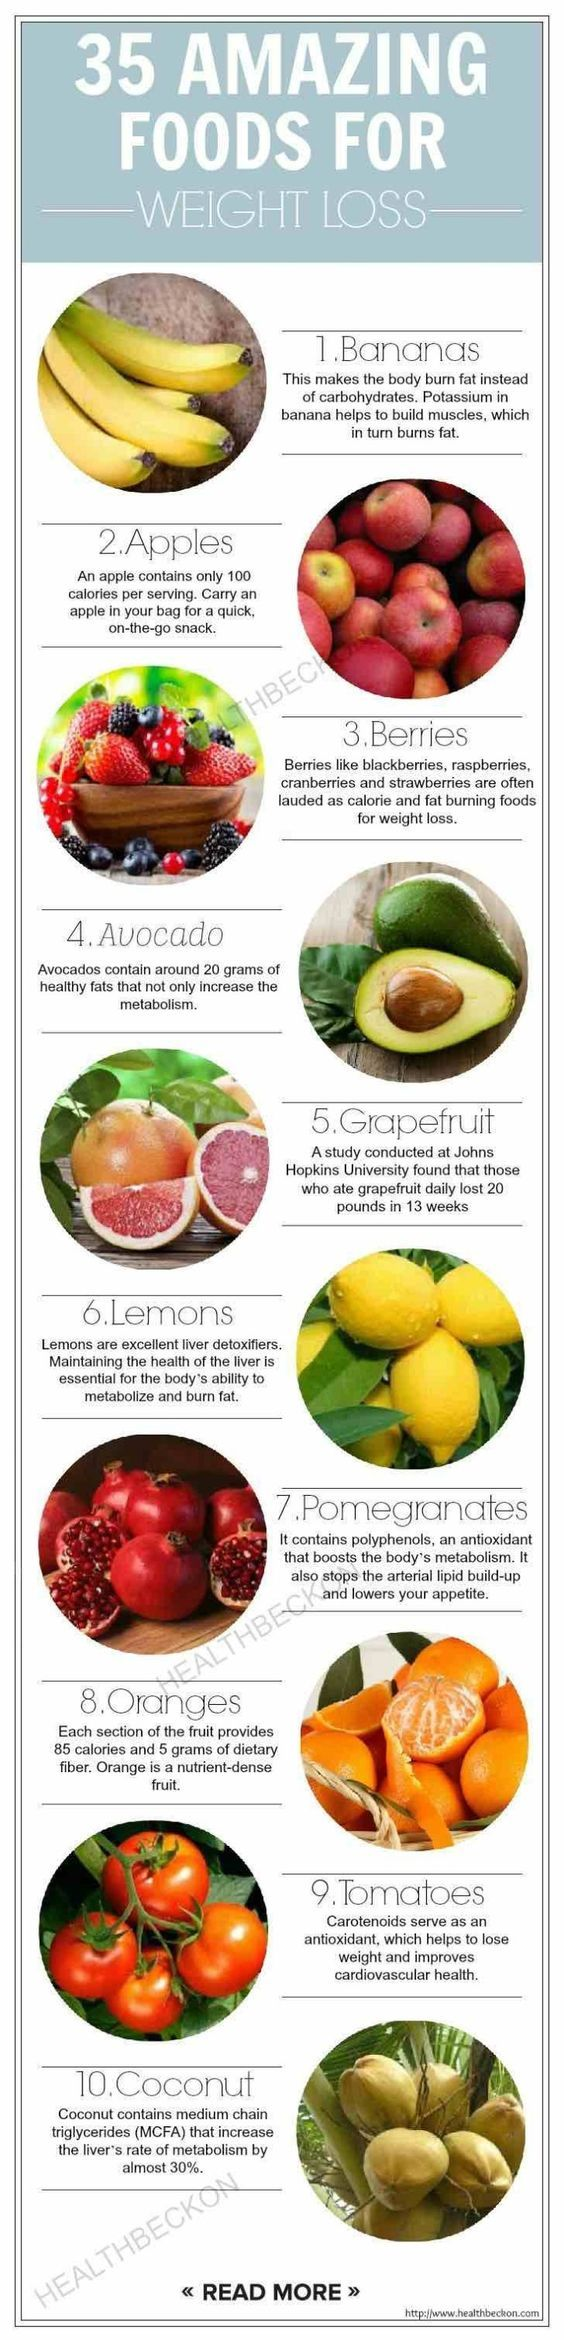 Home Remedies For Extreme Weight Loss